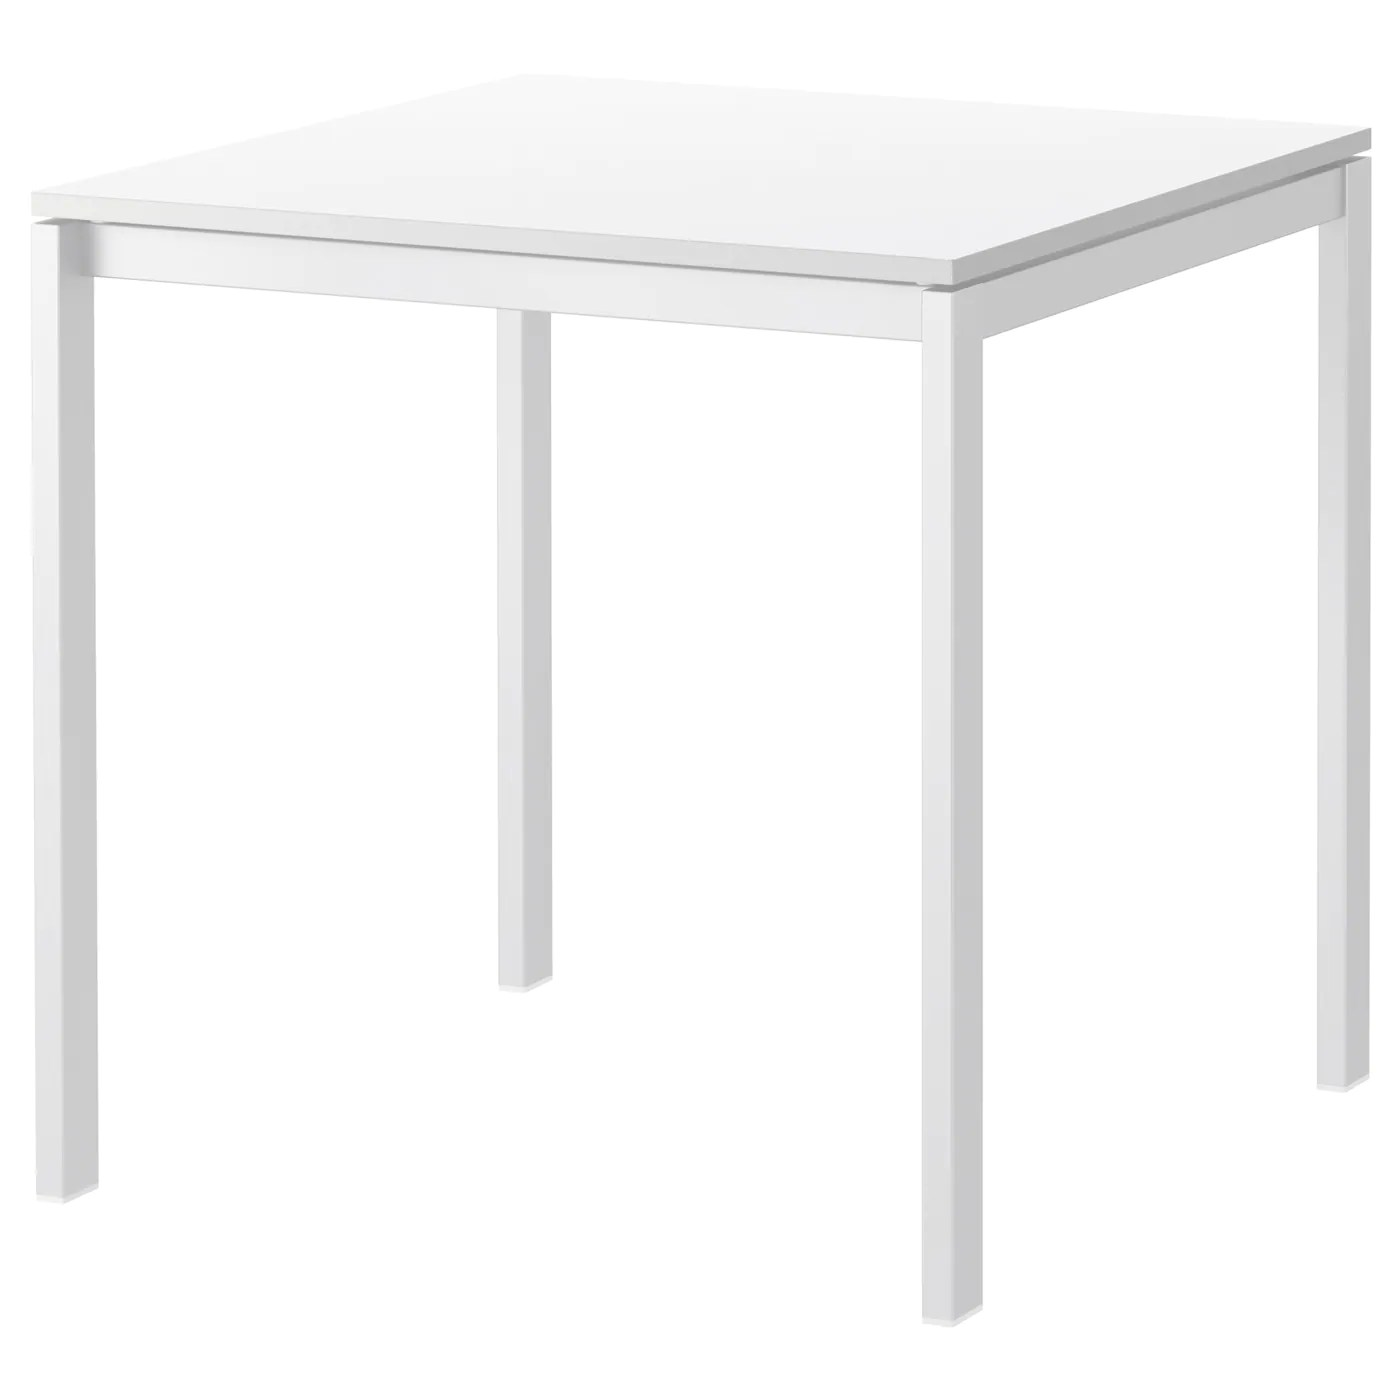 Melltorp Table White 75 X 75 Cm Ikea